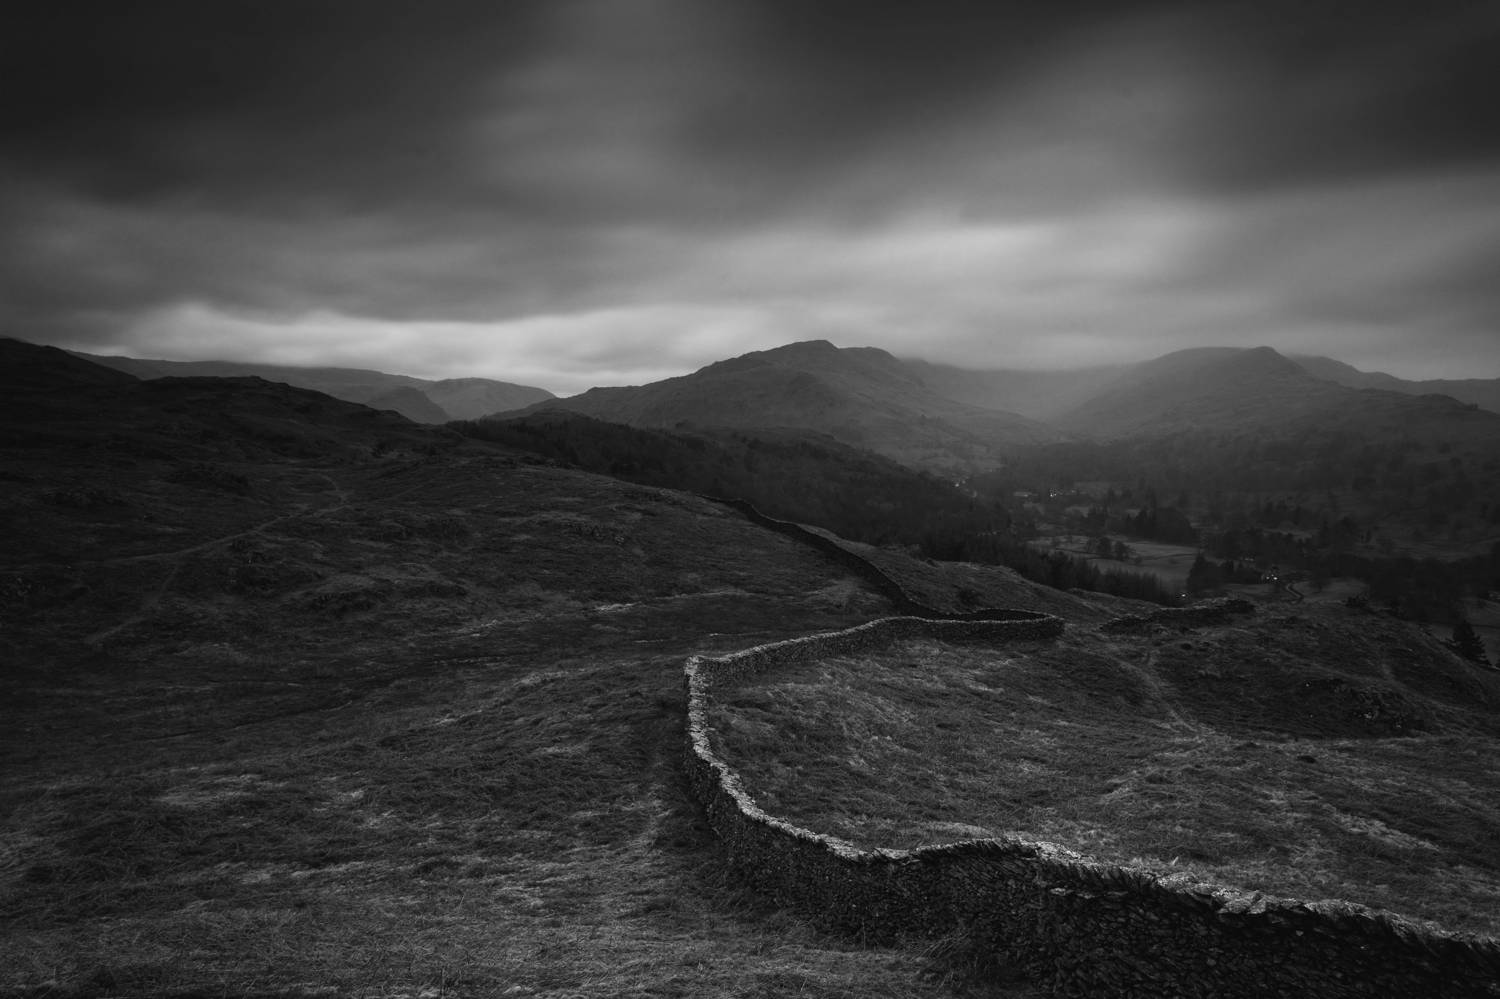 A black and white landscape photography by Joshua Wyborn depicts a grim, moody view of a low, stone farm wall in the UK.